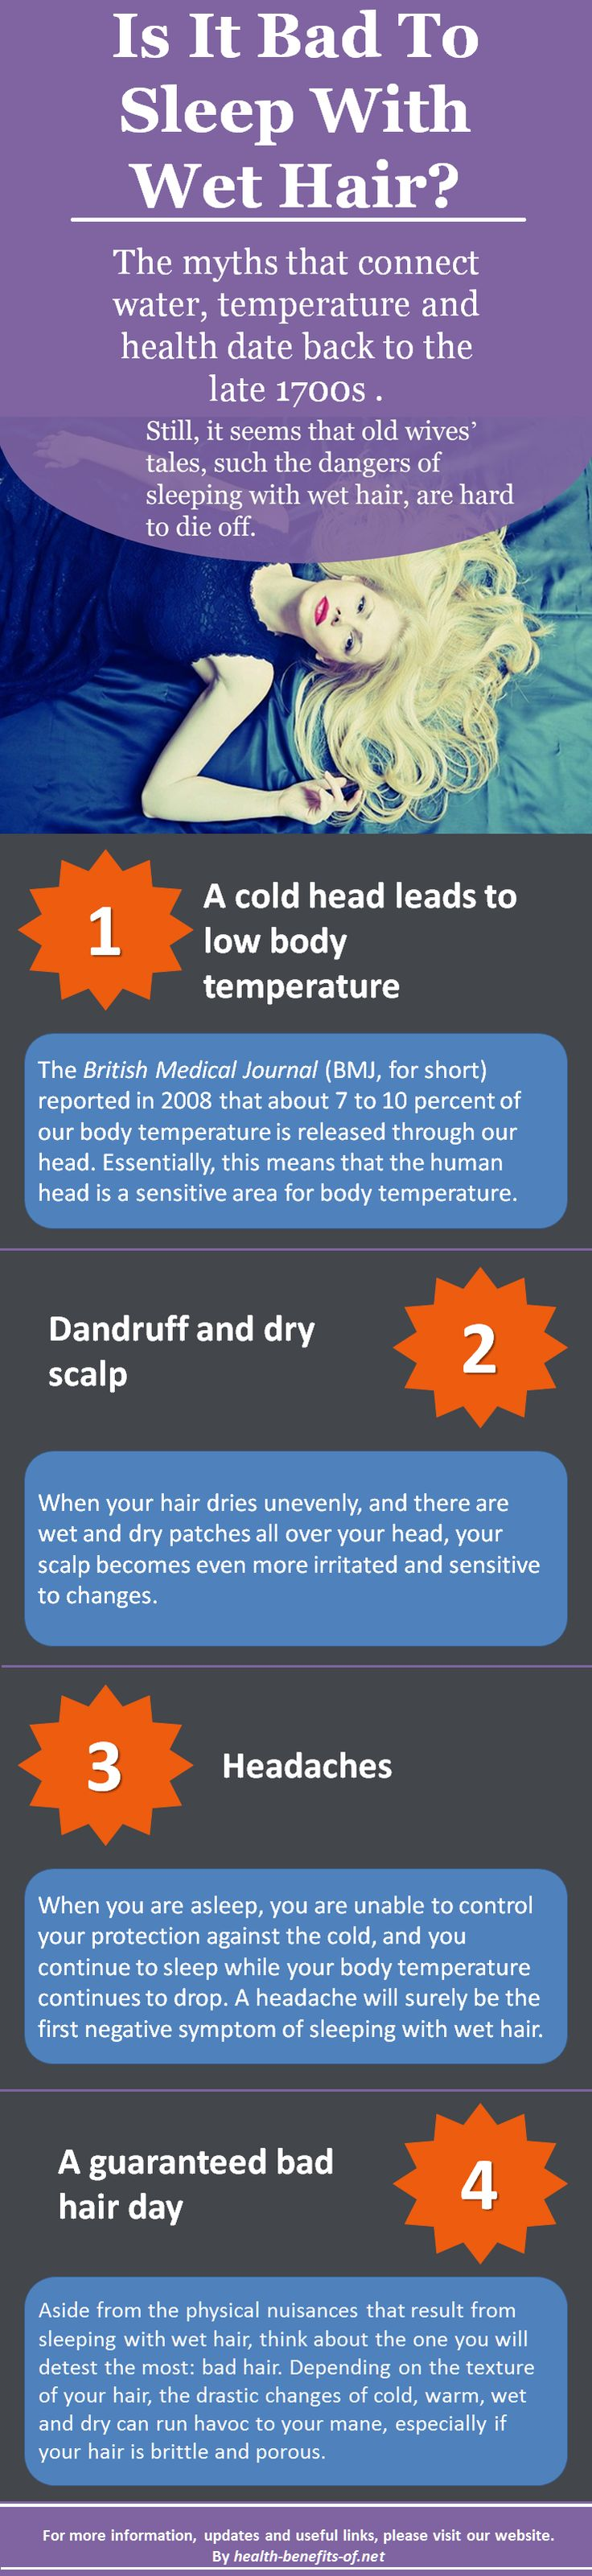 The myths that connect water, temperature and health date back to the late 1700s . Still, it seems that old wives' tales, such the dangers of sleeping with wet hair, are hard to die off...